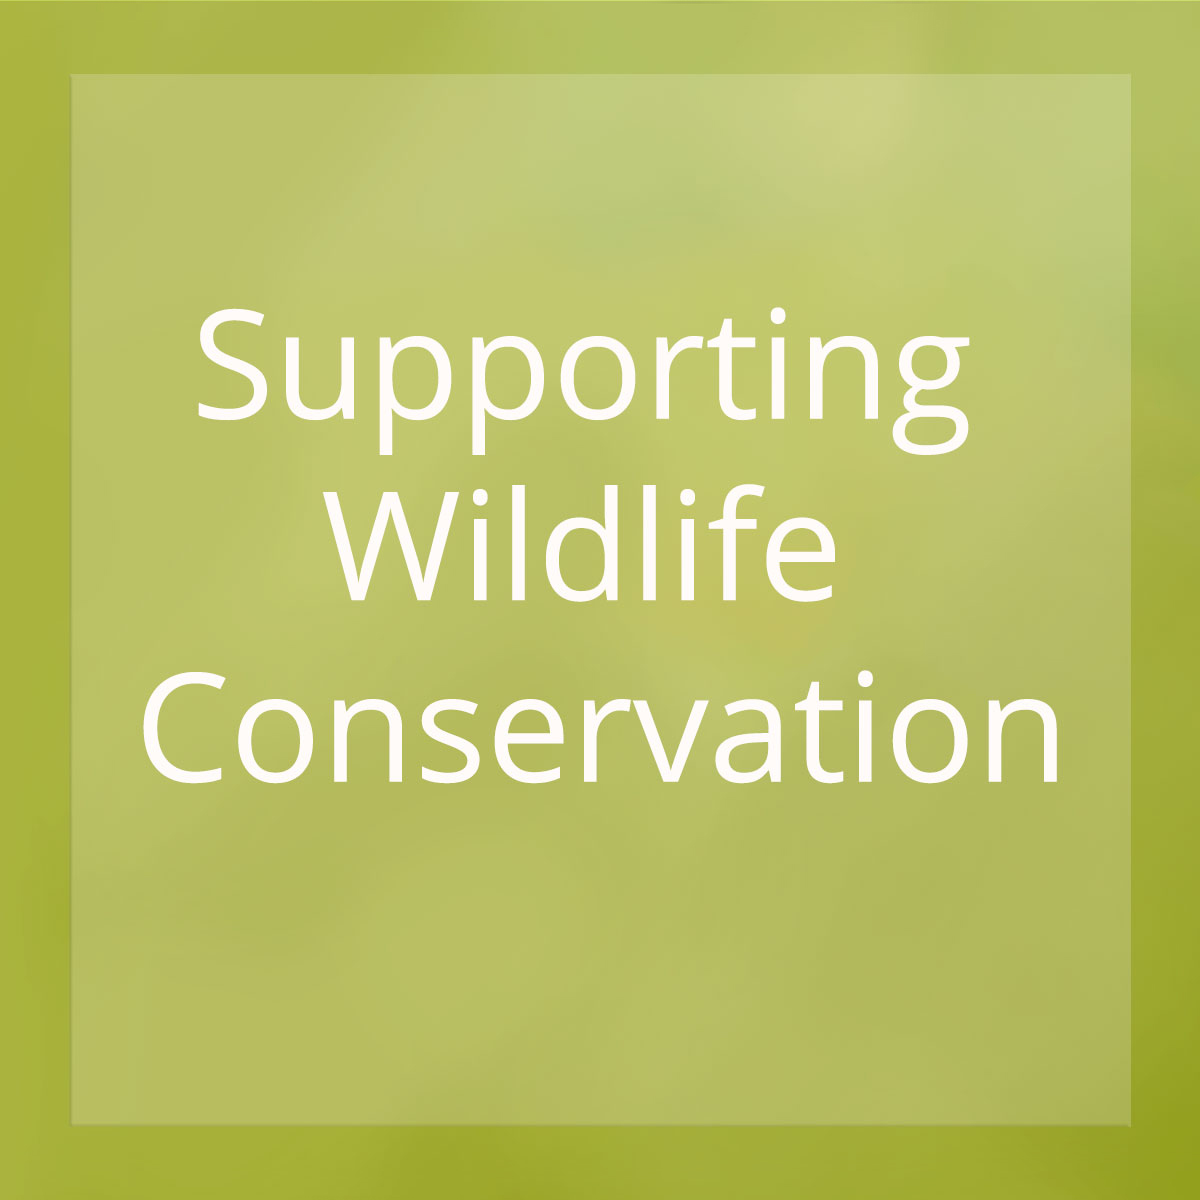 Learn more about how Beasts & Blossoms supports wildlife conservation